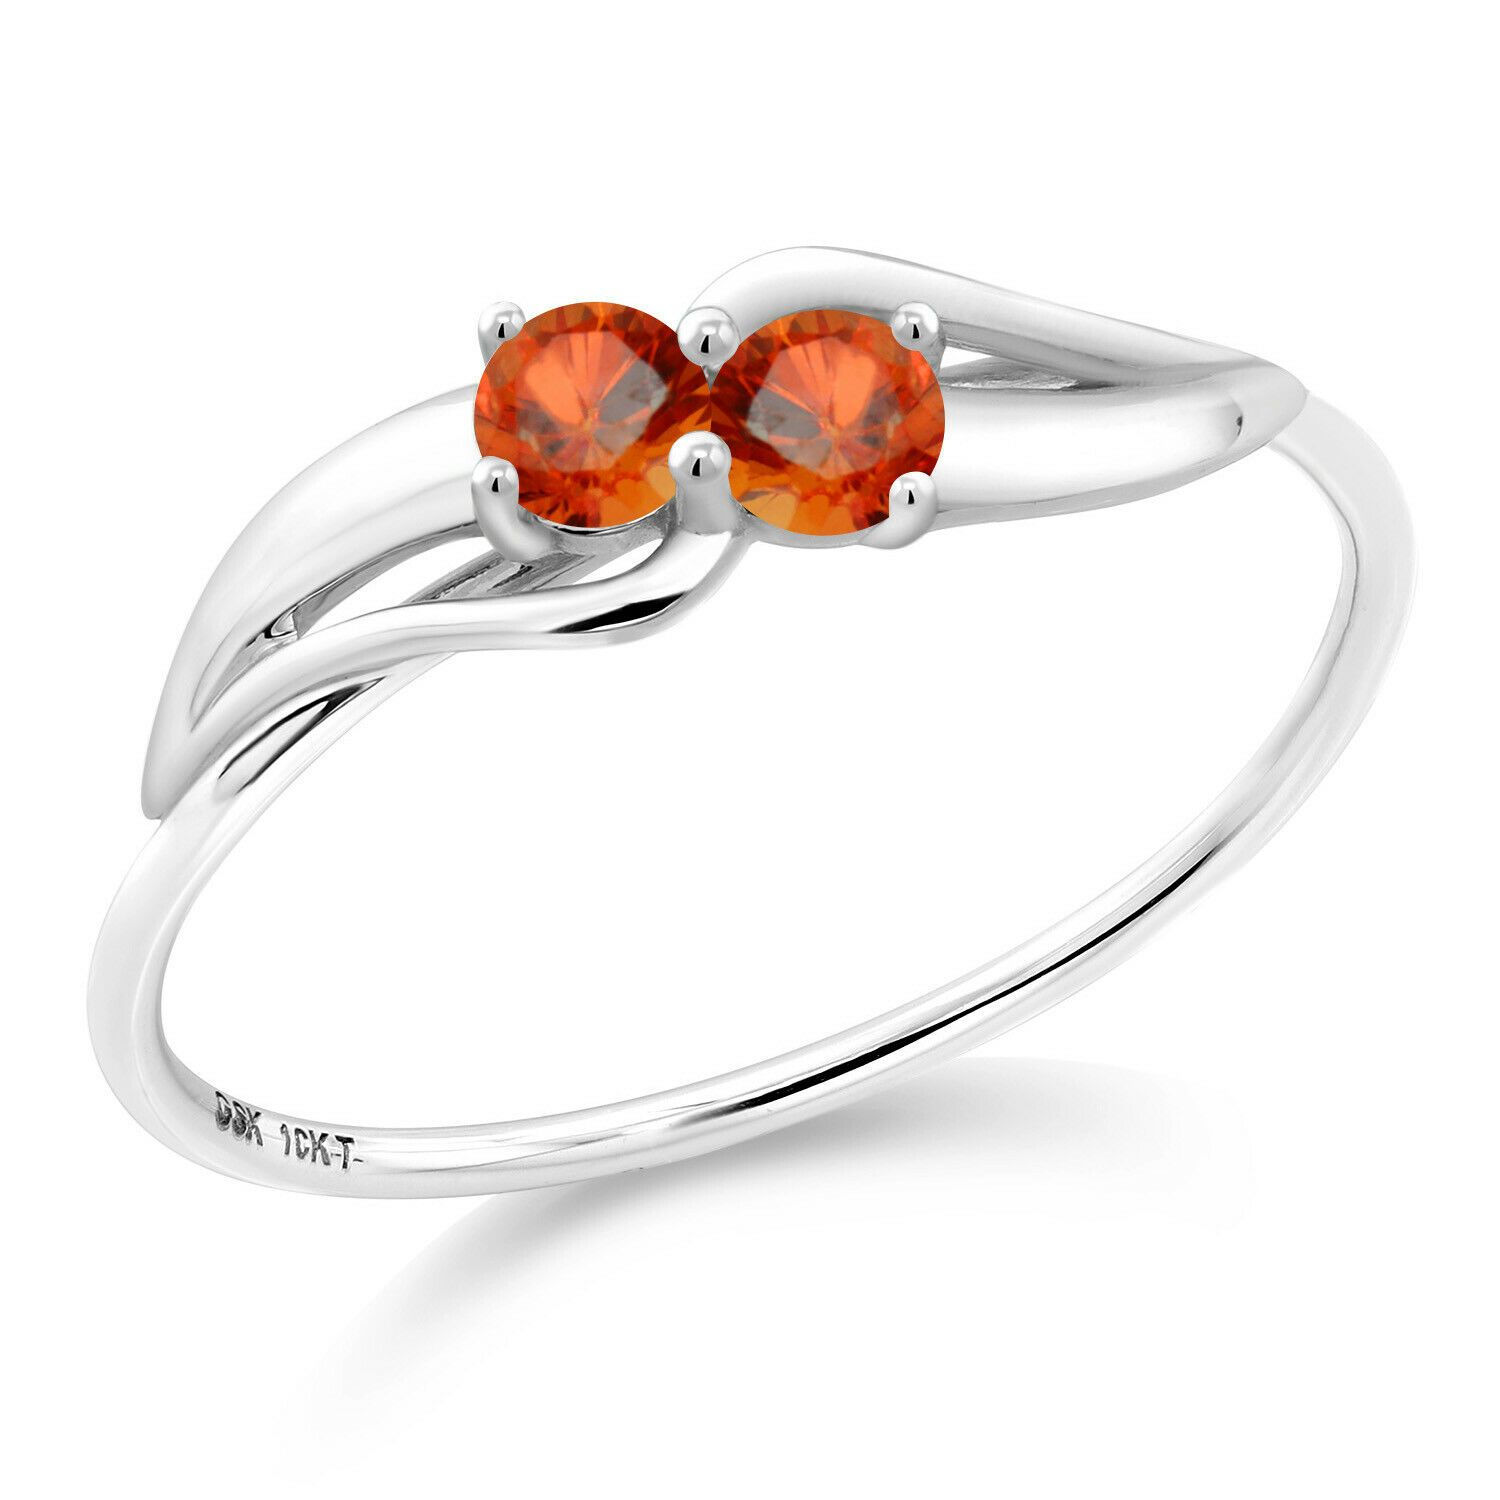 0 32 Ct Round Orange Sapphire 10k White Gold Ring 10k Gold Orange Ring Sapphire White Whitegold Https Gold Ring Price White Gold Rings Orange Sapphire